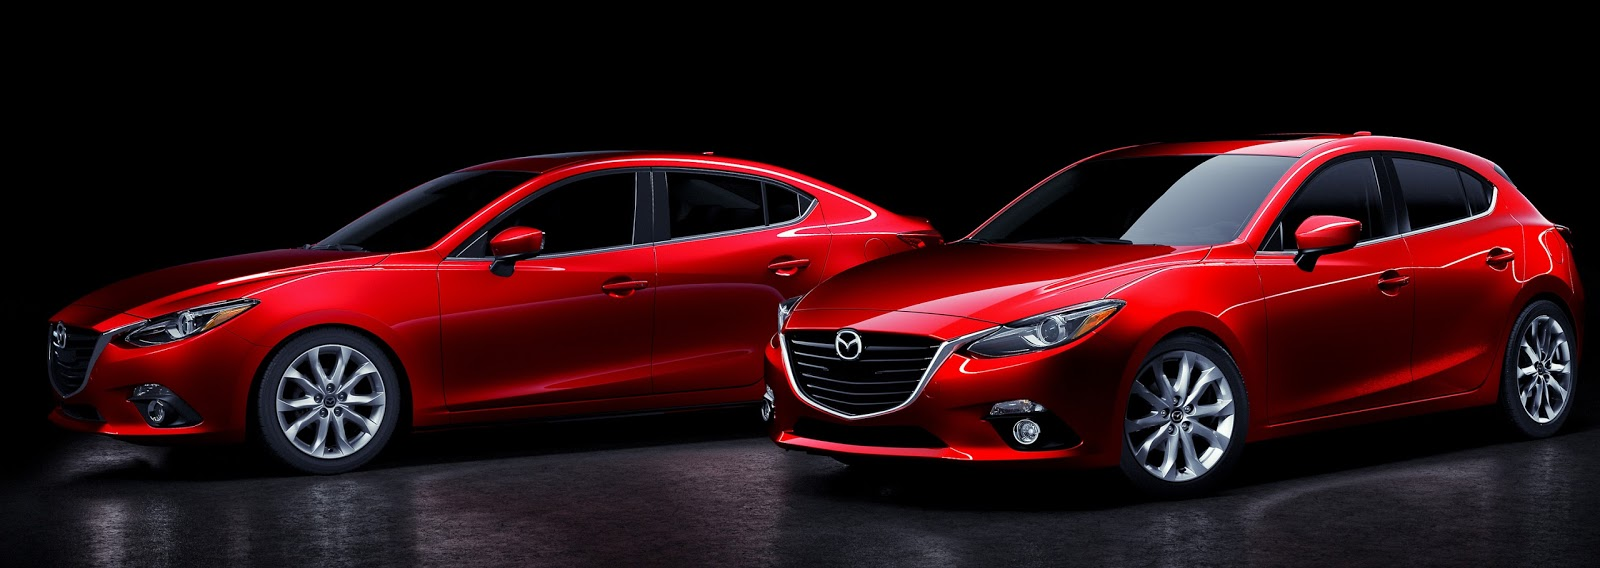 Uautoknownet Mazda Announces Allnew Madza Pricing And EPA - Mazda net